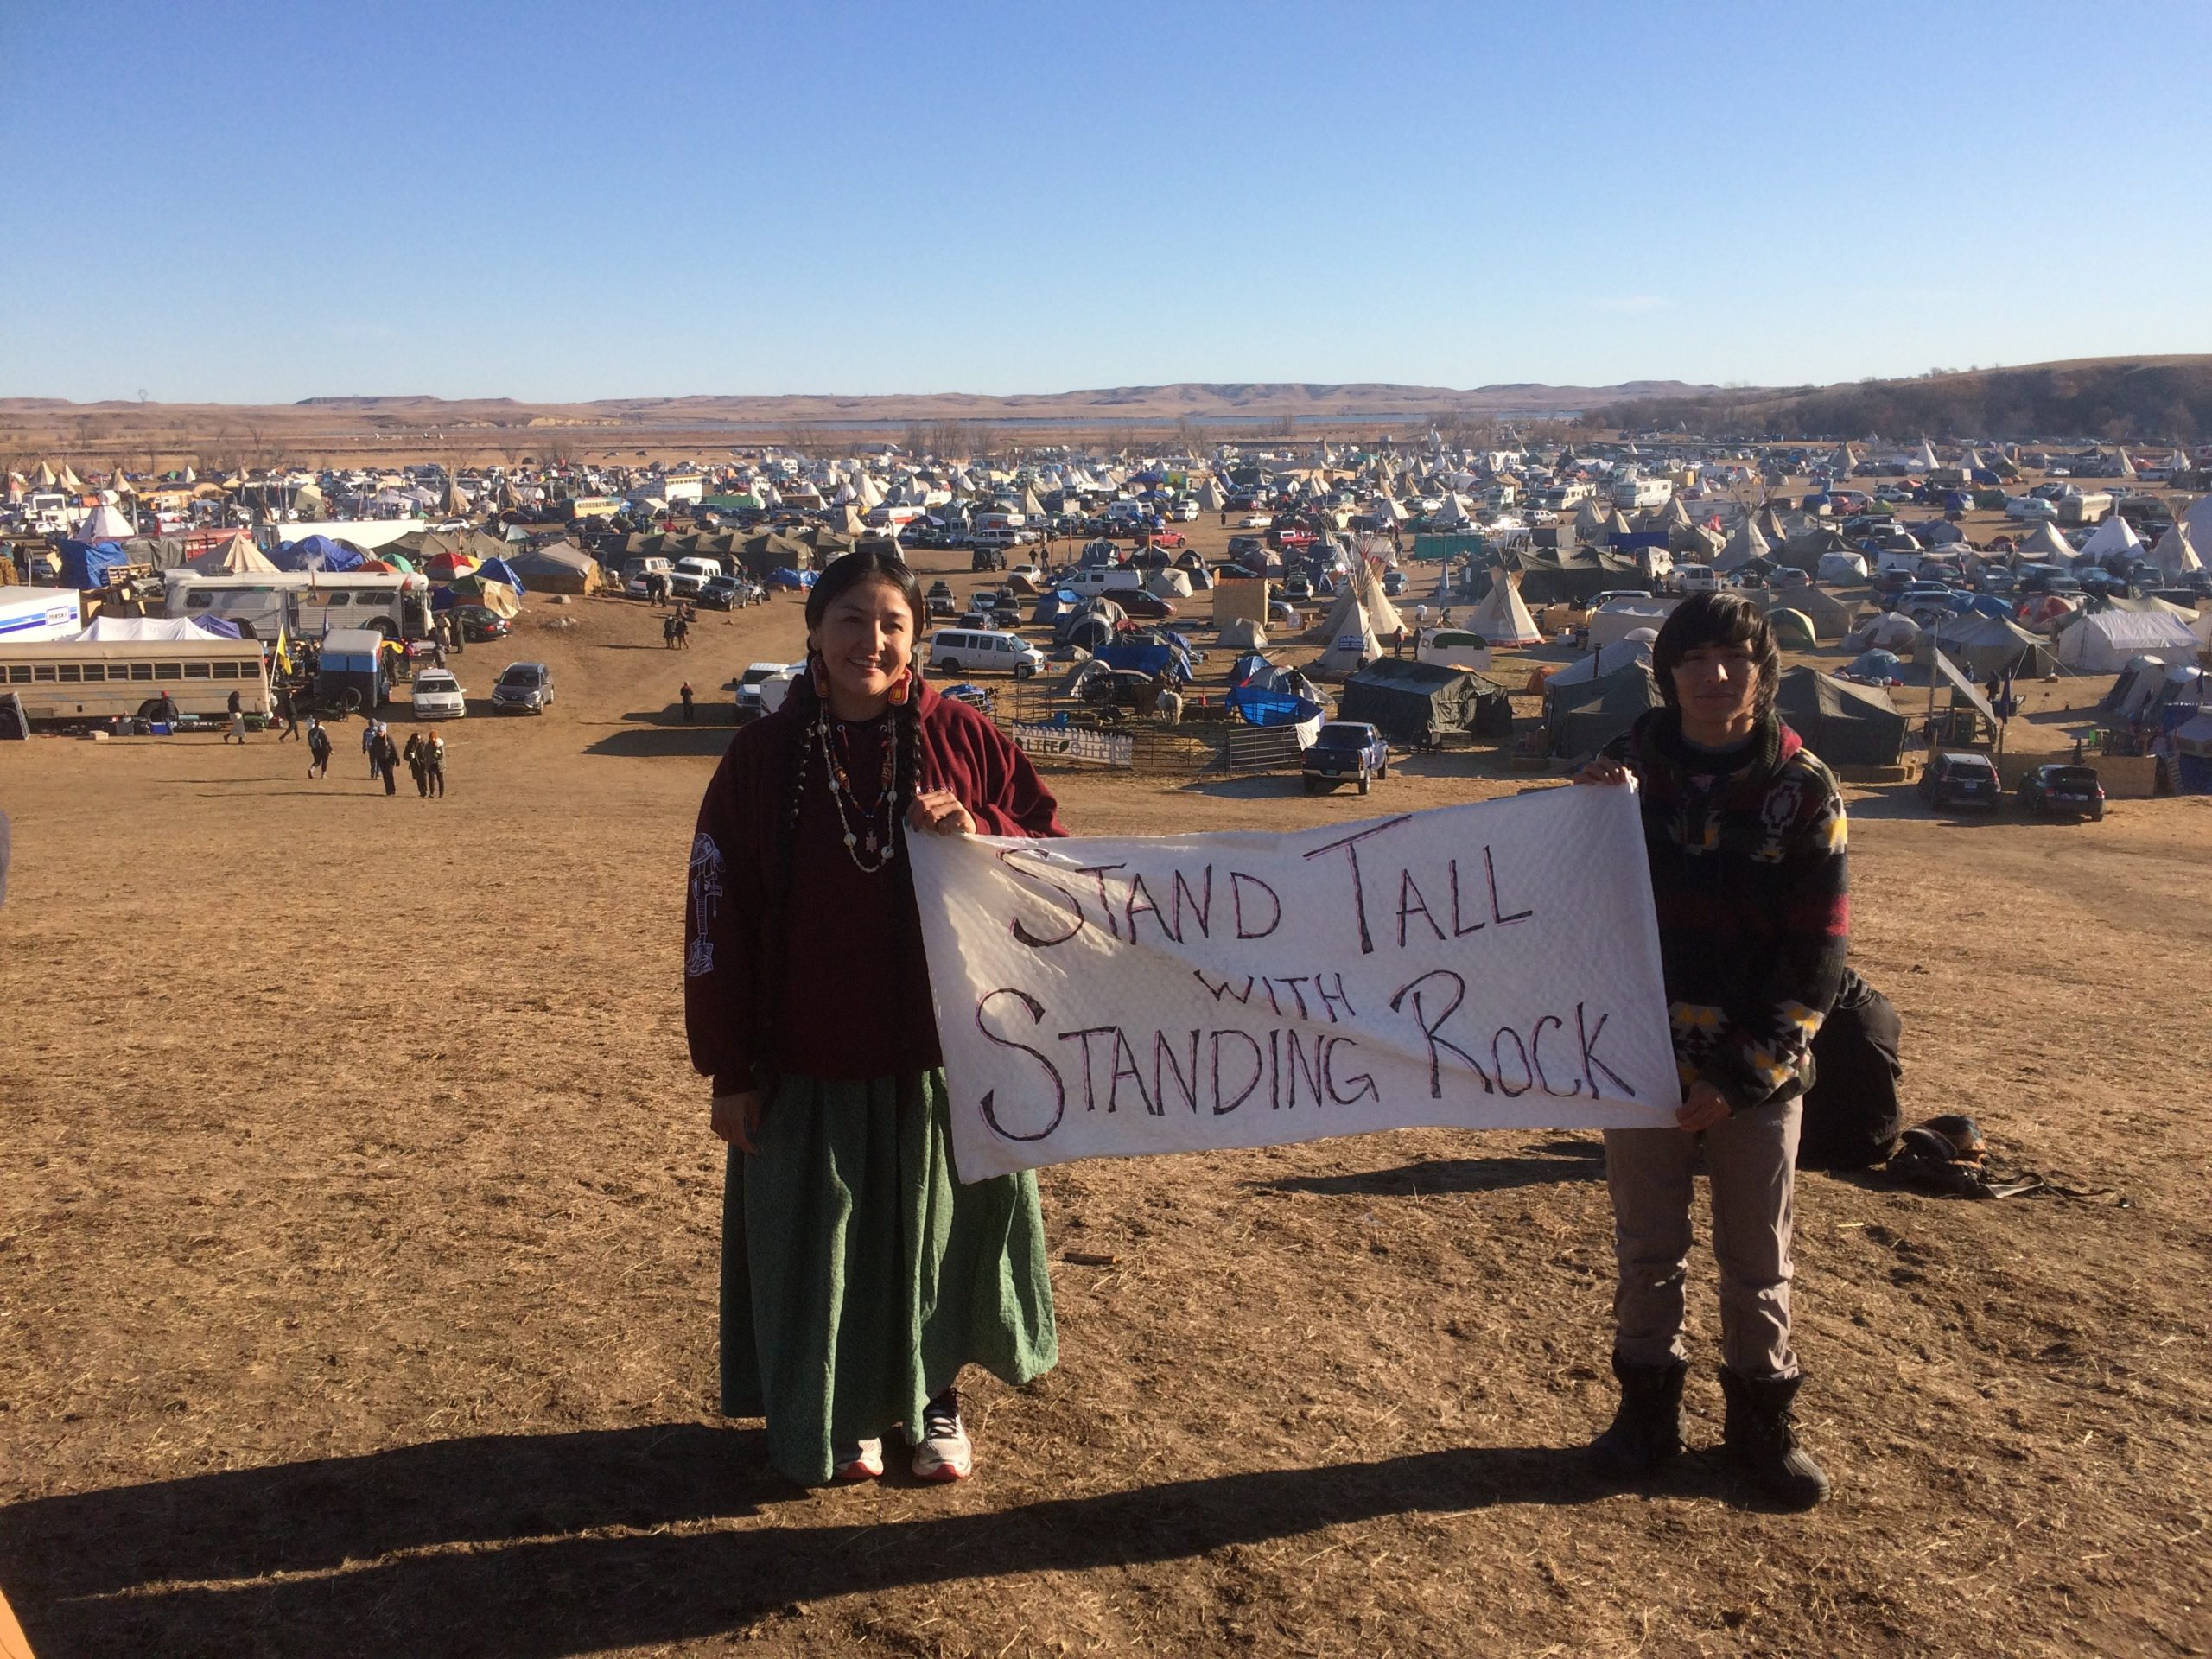 Stand tall with standing rock